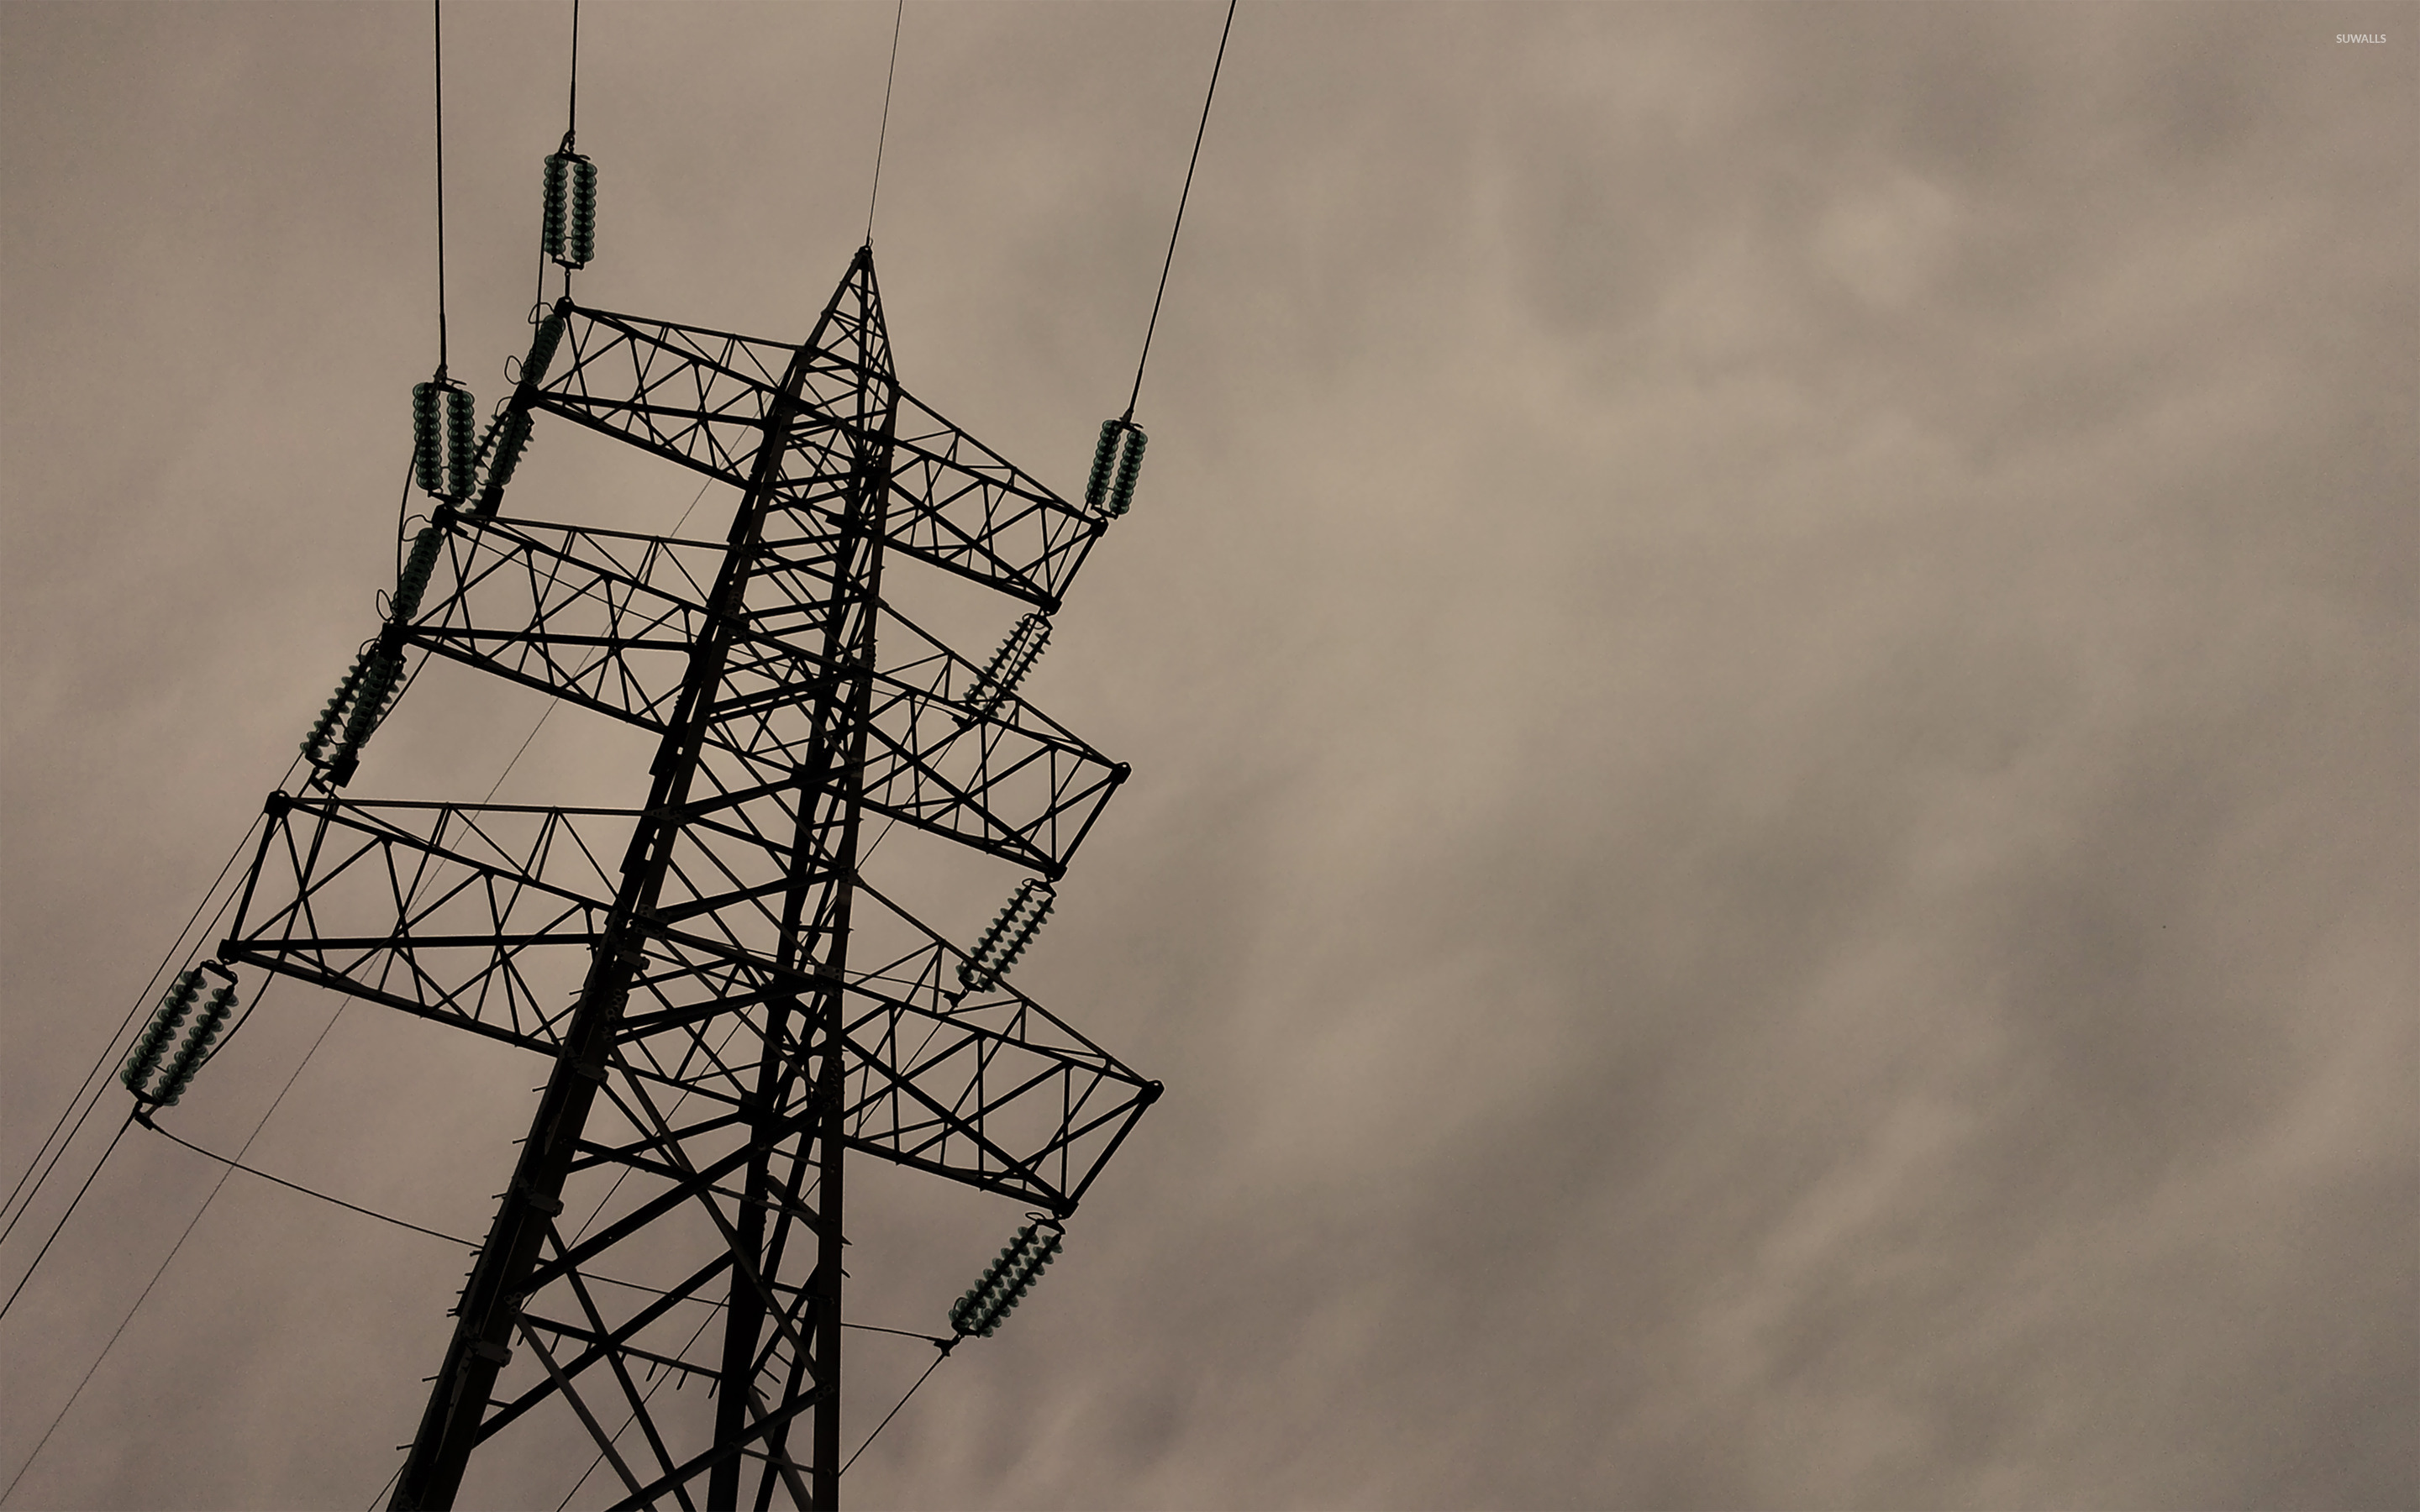 Transmission Tower Wallpaper Photography Wallpapers 31754